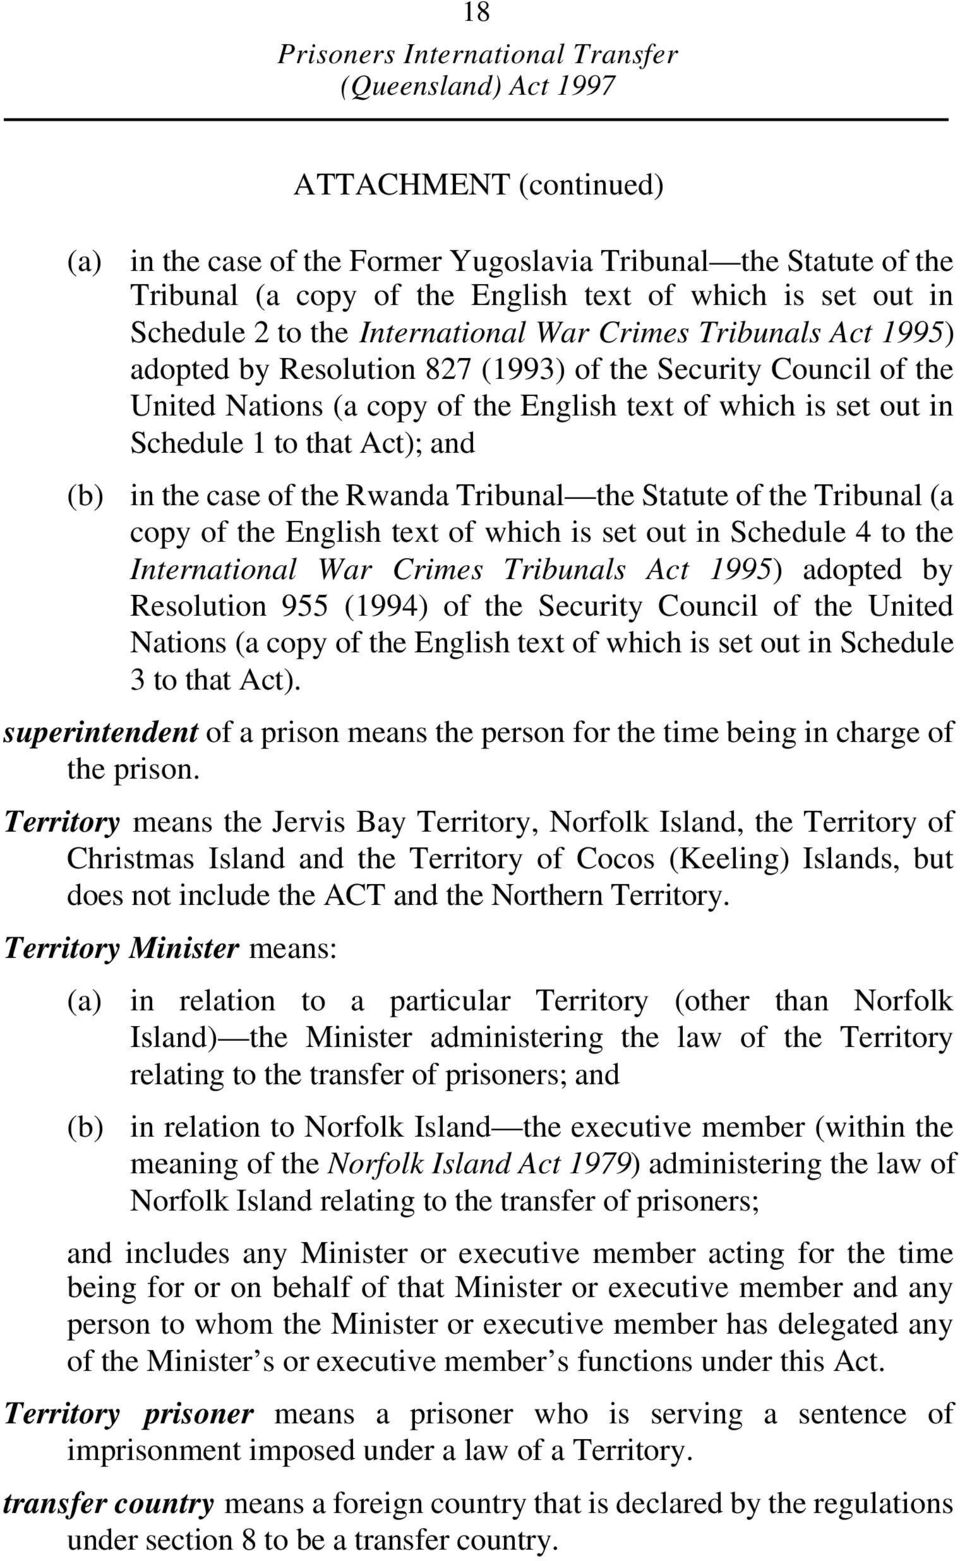 of the Tribunal (a copy of the English text of which is set out in Schedule 4 to the International War Crimes Tribunals Act 1995) adopted by Resolution 955 (1994) of the Security Council of the